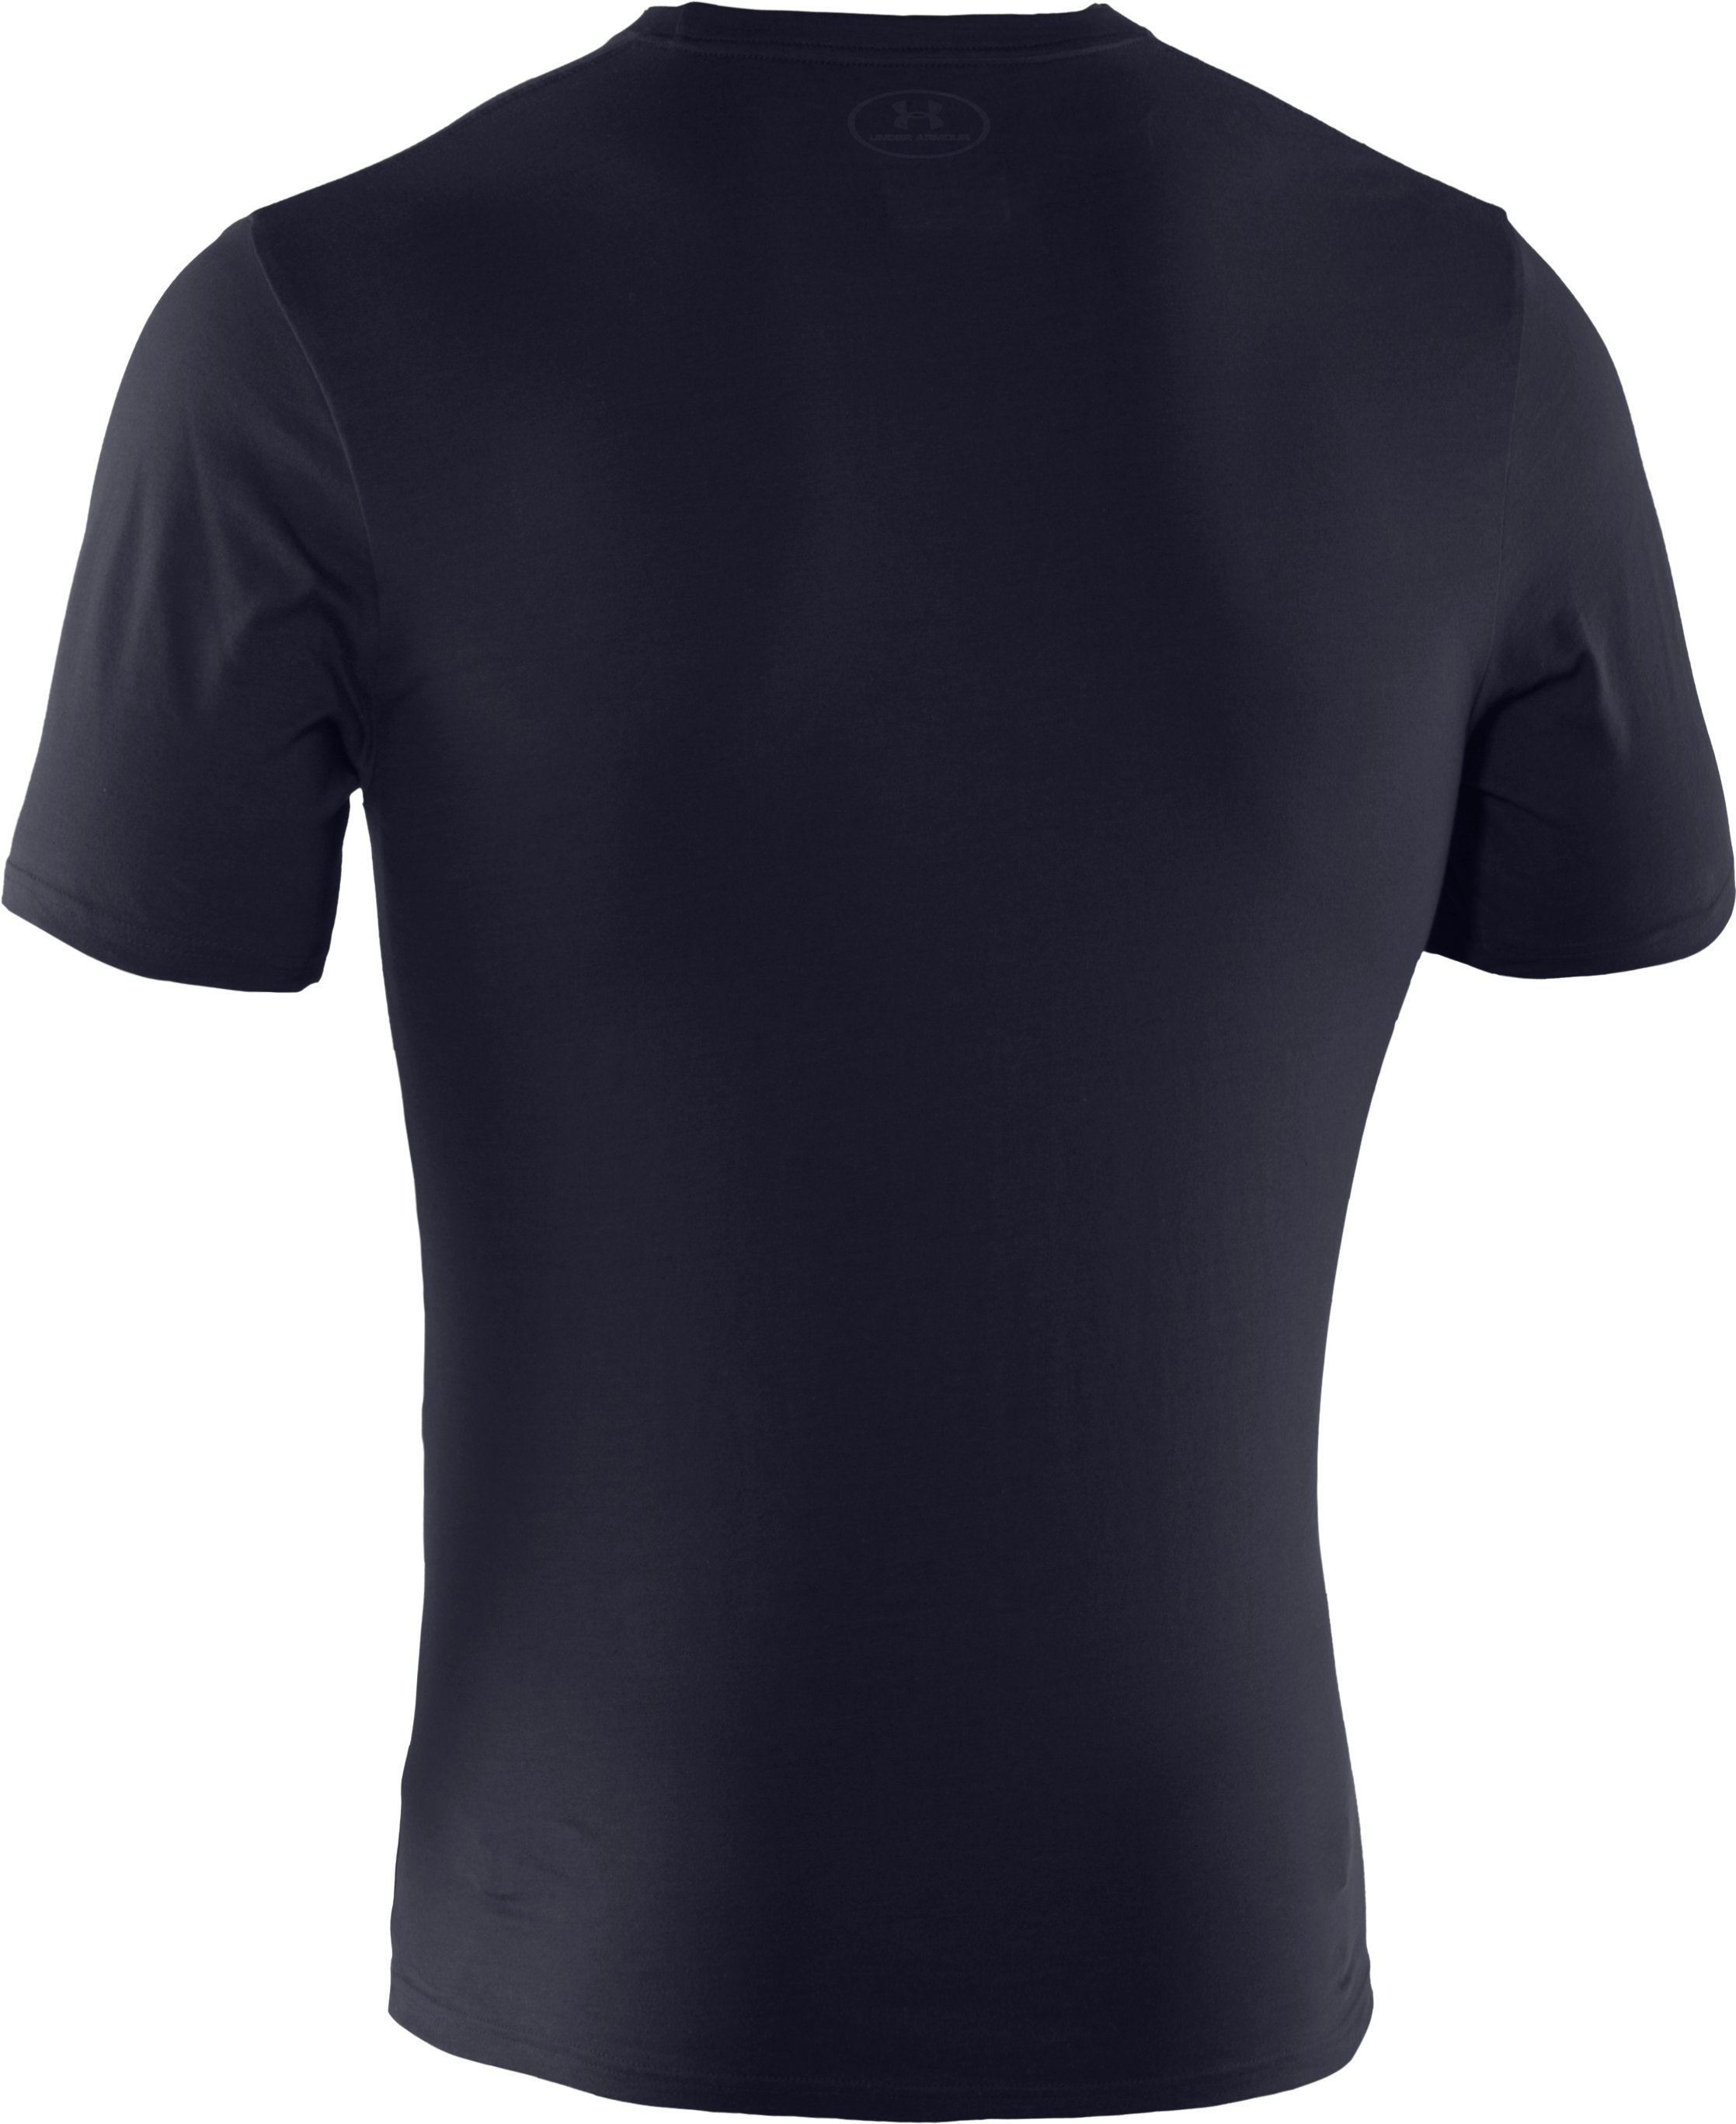 Men's UA Tactical Charged Cotton® T-Shirt, Dark Navy Blue